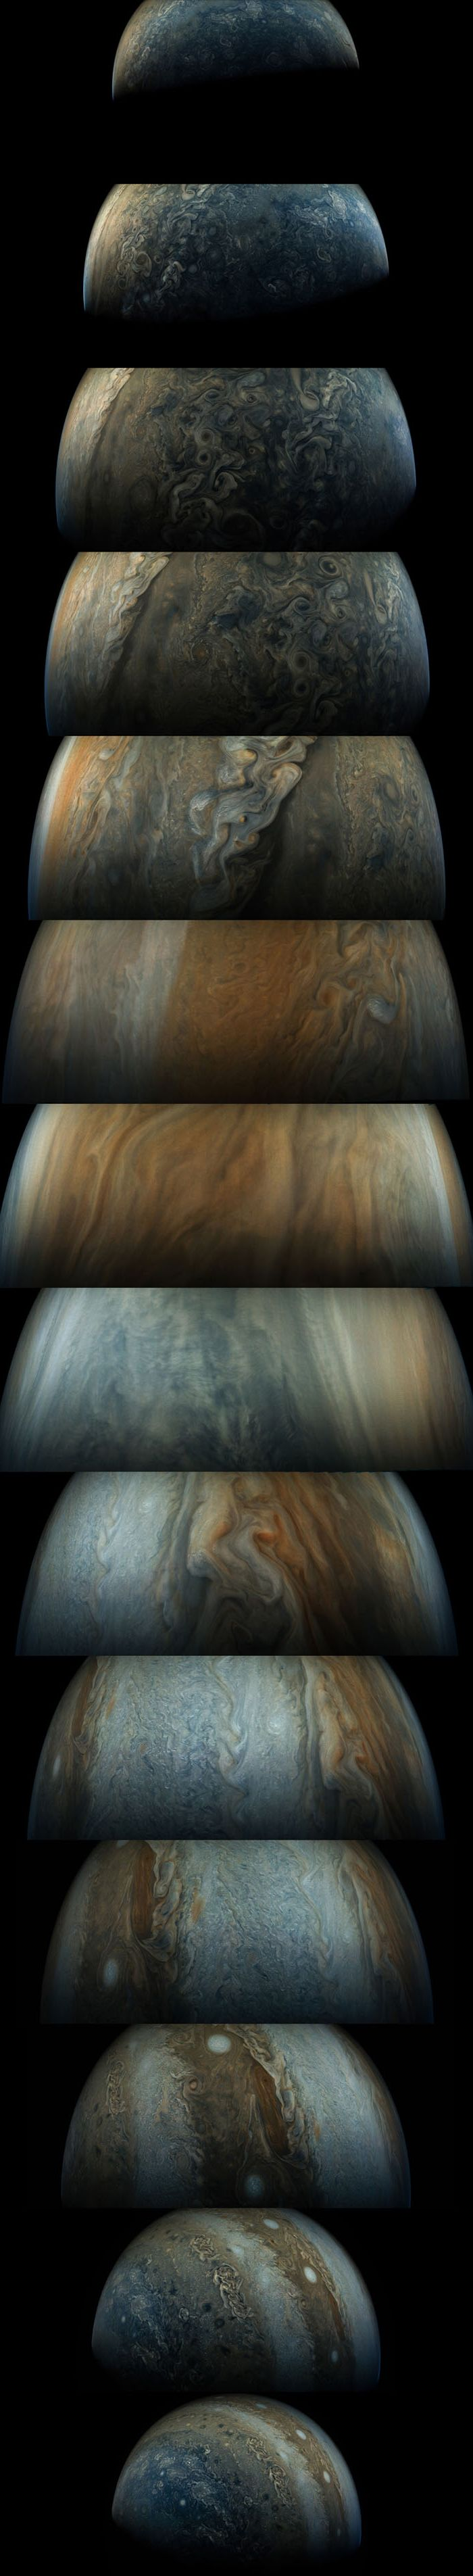 This sequence of enhanced-color images shows how quickly the viewing geometry changes for NASA's Juno spacecraft as it swoops by Jupiter. The images were obtained by JunoCam. Once every 53 days the Juno spacecraft swings close to Jupiter, speeding over its clouds. In just two hours, the spacecraft travels from a perch over Jupiter's north pole through its closest approach (perijove), then passes over the south pole on its way back out.